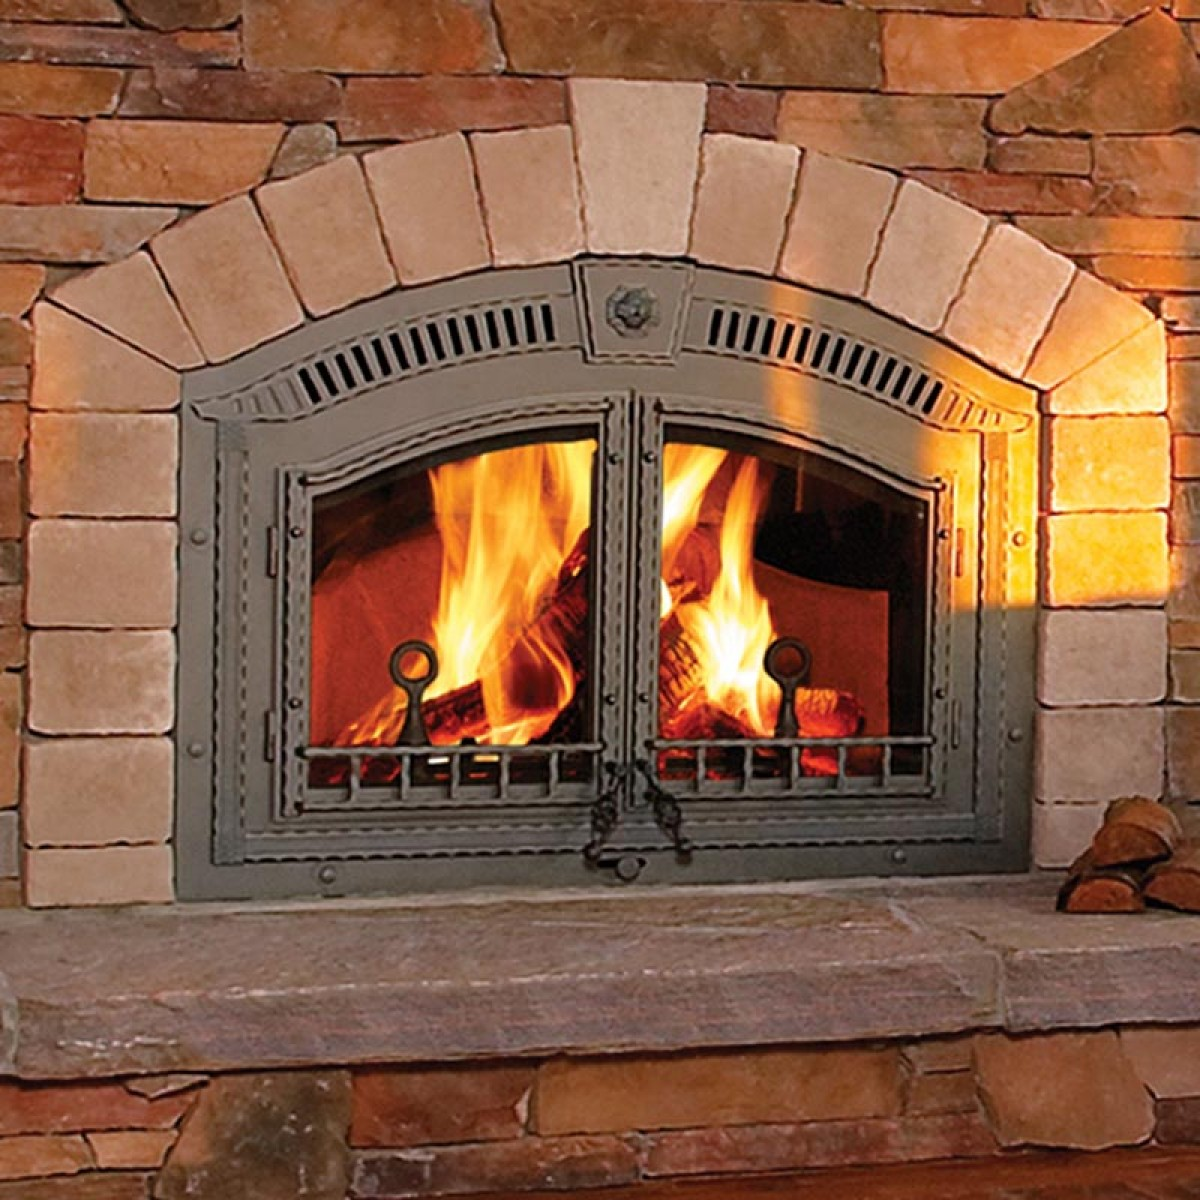 quadra fire gfk royal blower durablow superior dp fireplace jakel for glo heat power nordica hearth universal grate cord home lennox fan w